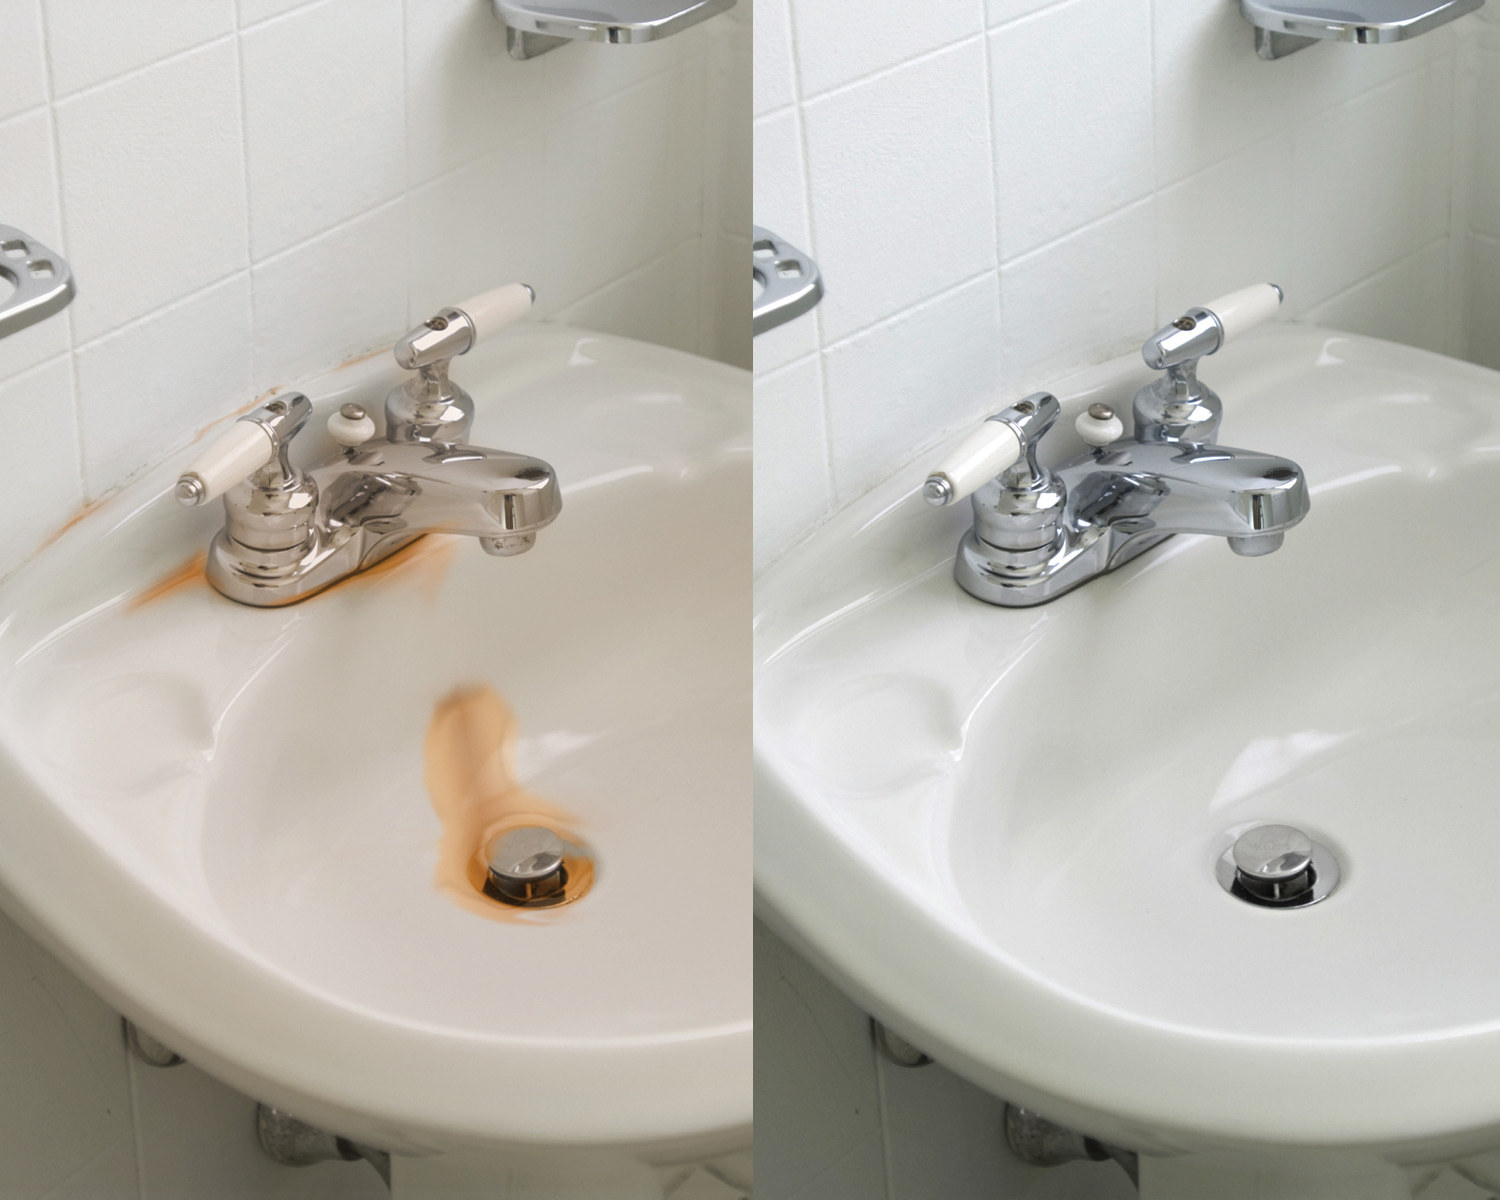 A before and after image: the before, a white porcelain sink with rust stains around the drain and faucet; the after, the same sink with the rust stains cleaned away